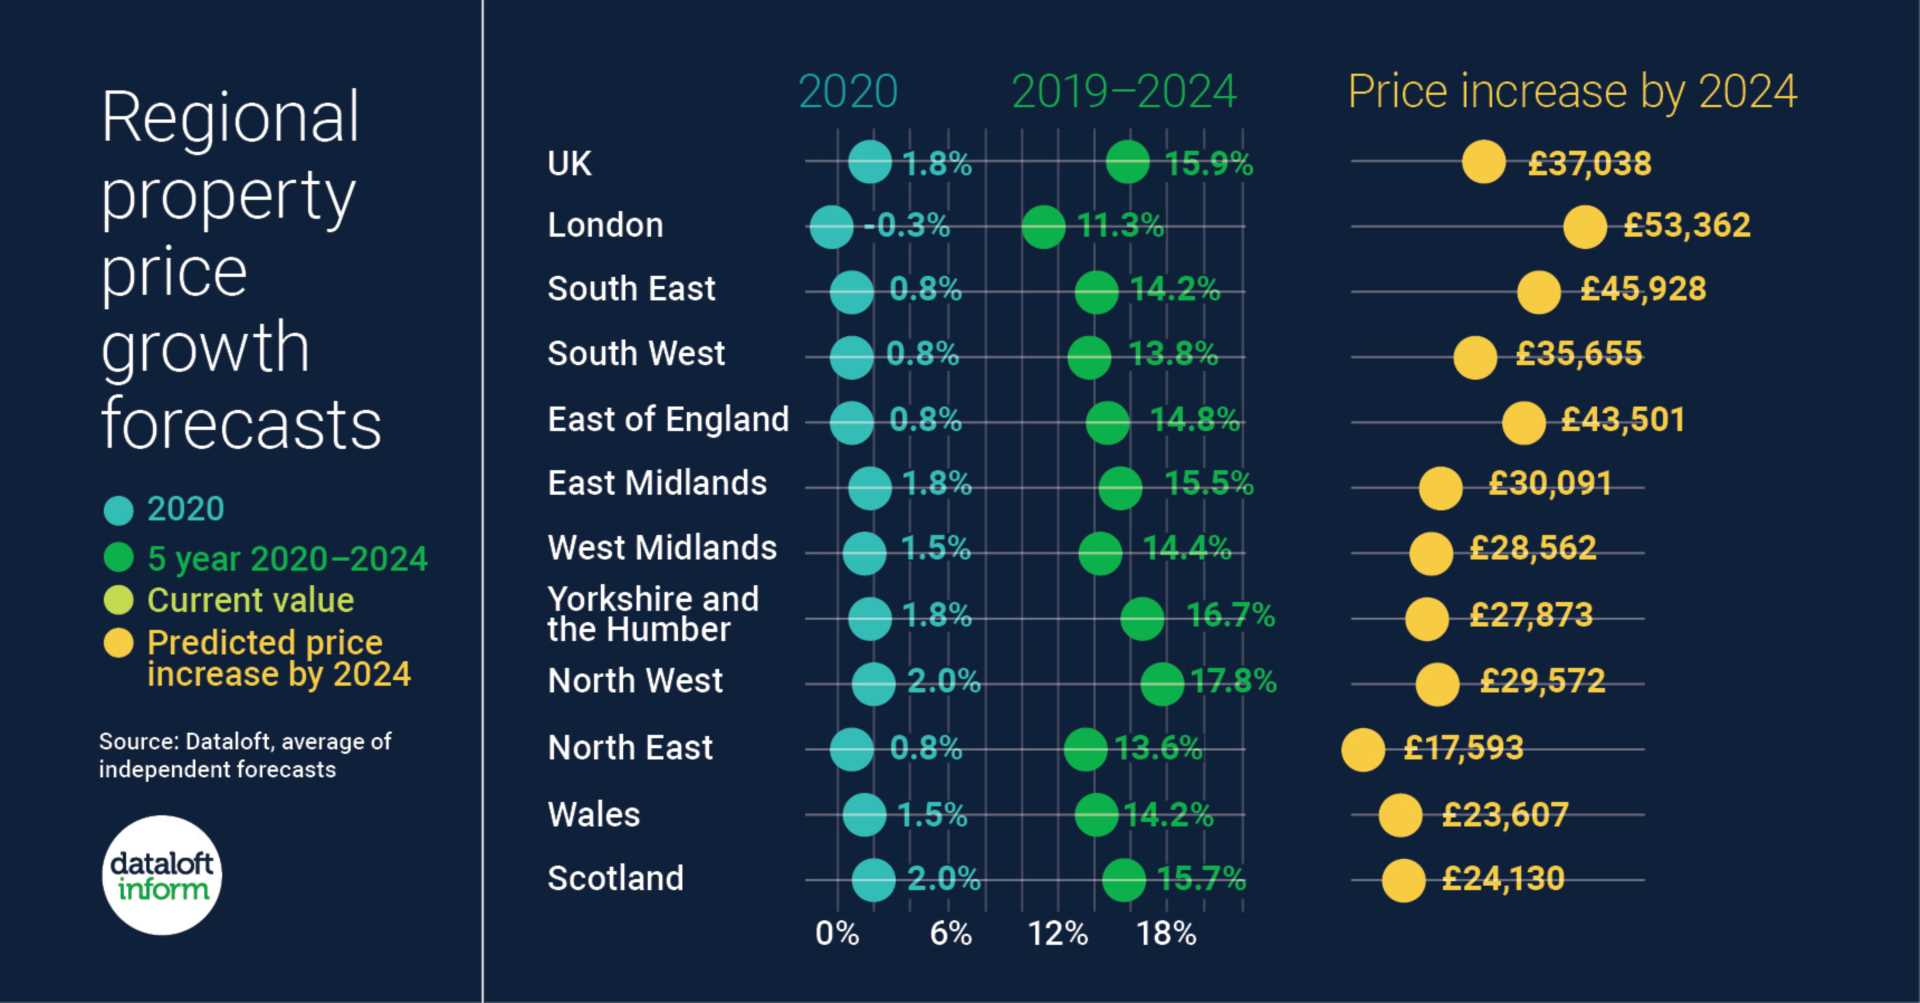 Regional property price growth forecasts